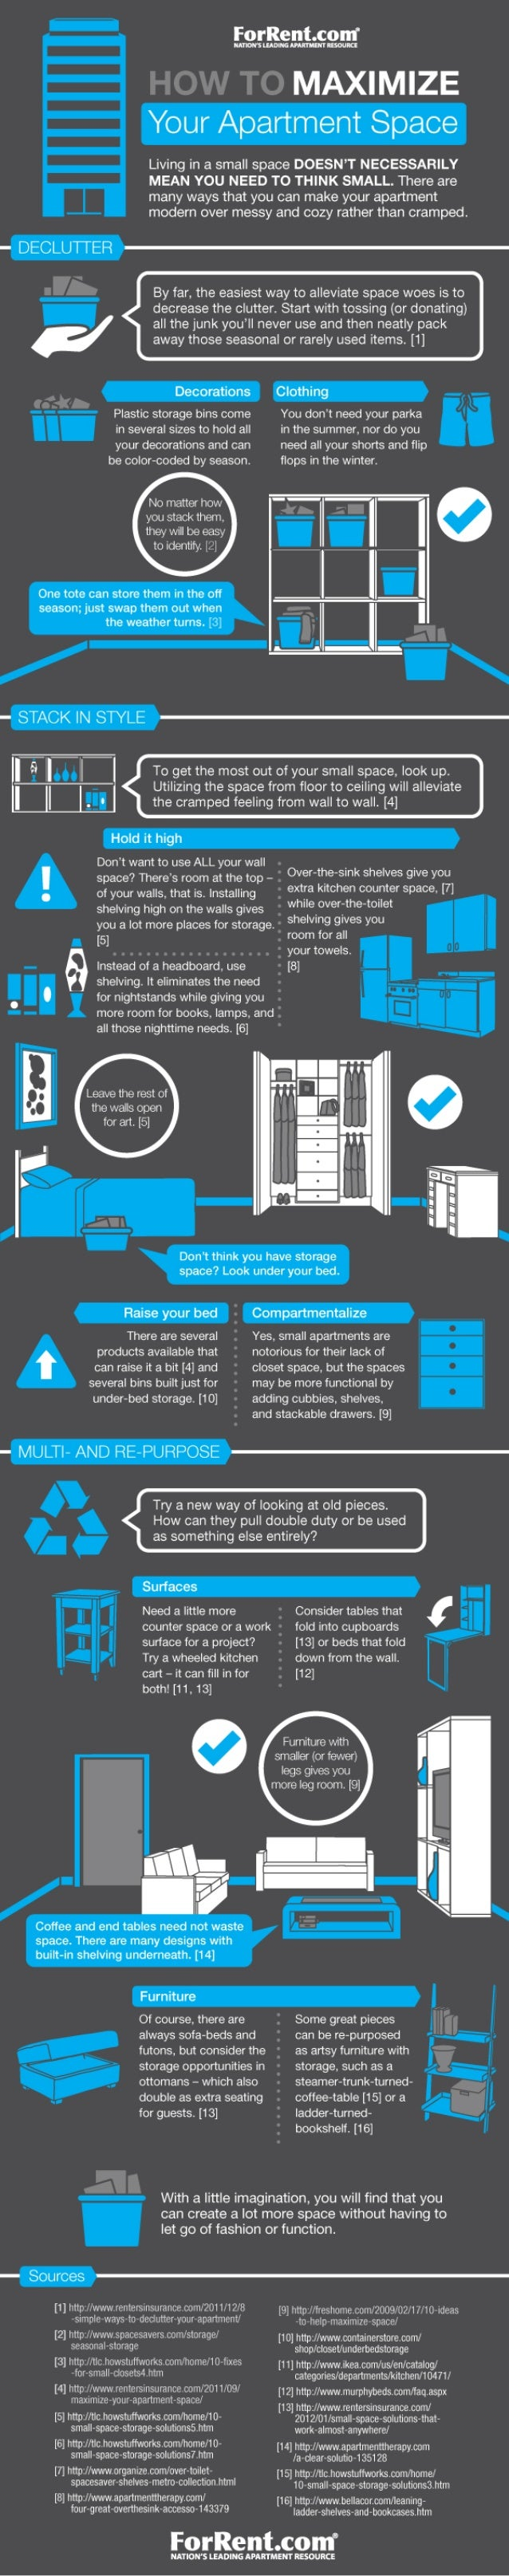 How to maximize your apartment space